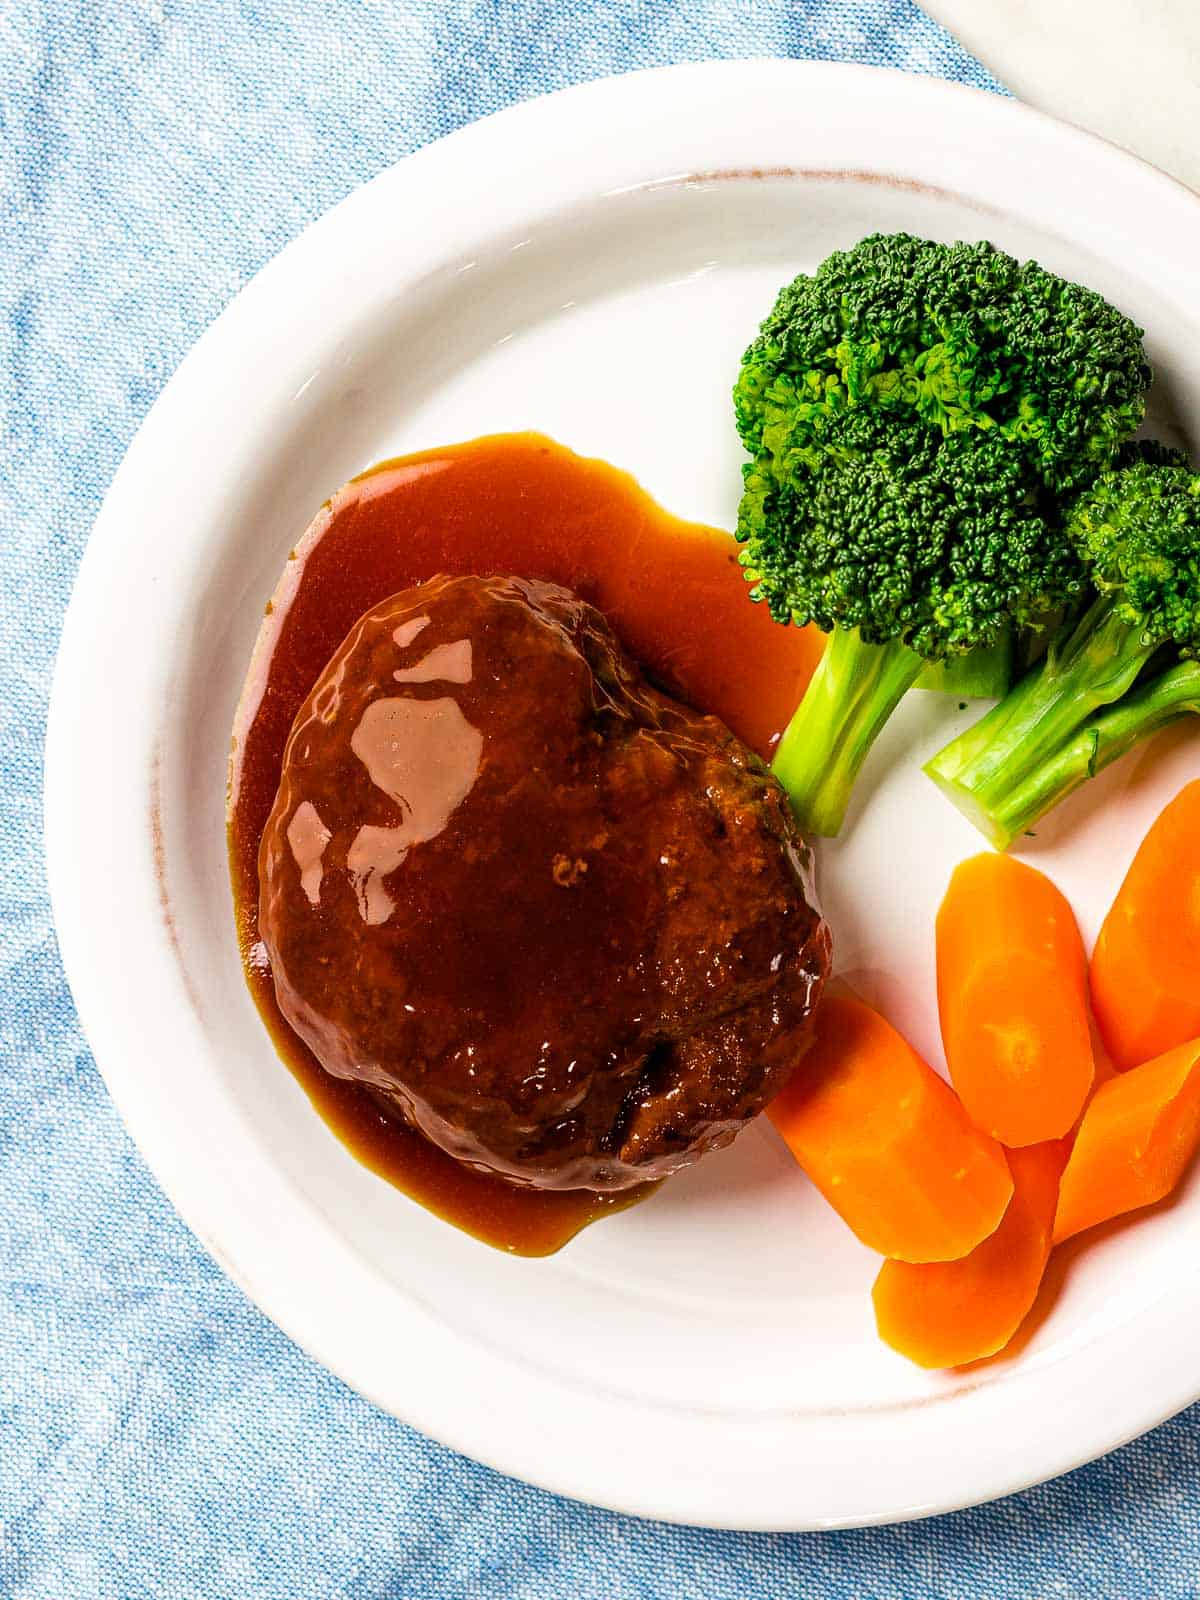 Japanese hamburger steak (hambāgu ハンバーグ) covered in tangy brown gravy on a white plate next to carrots and broccoli.